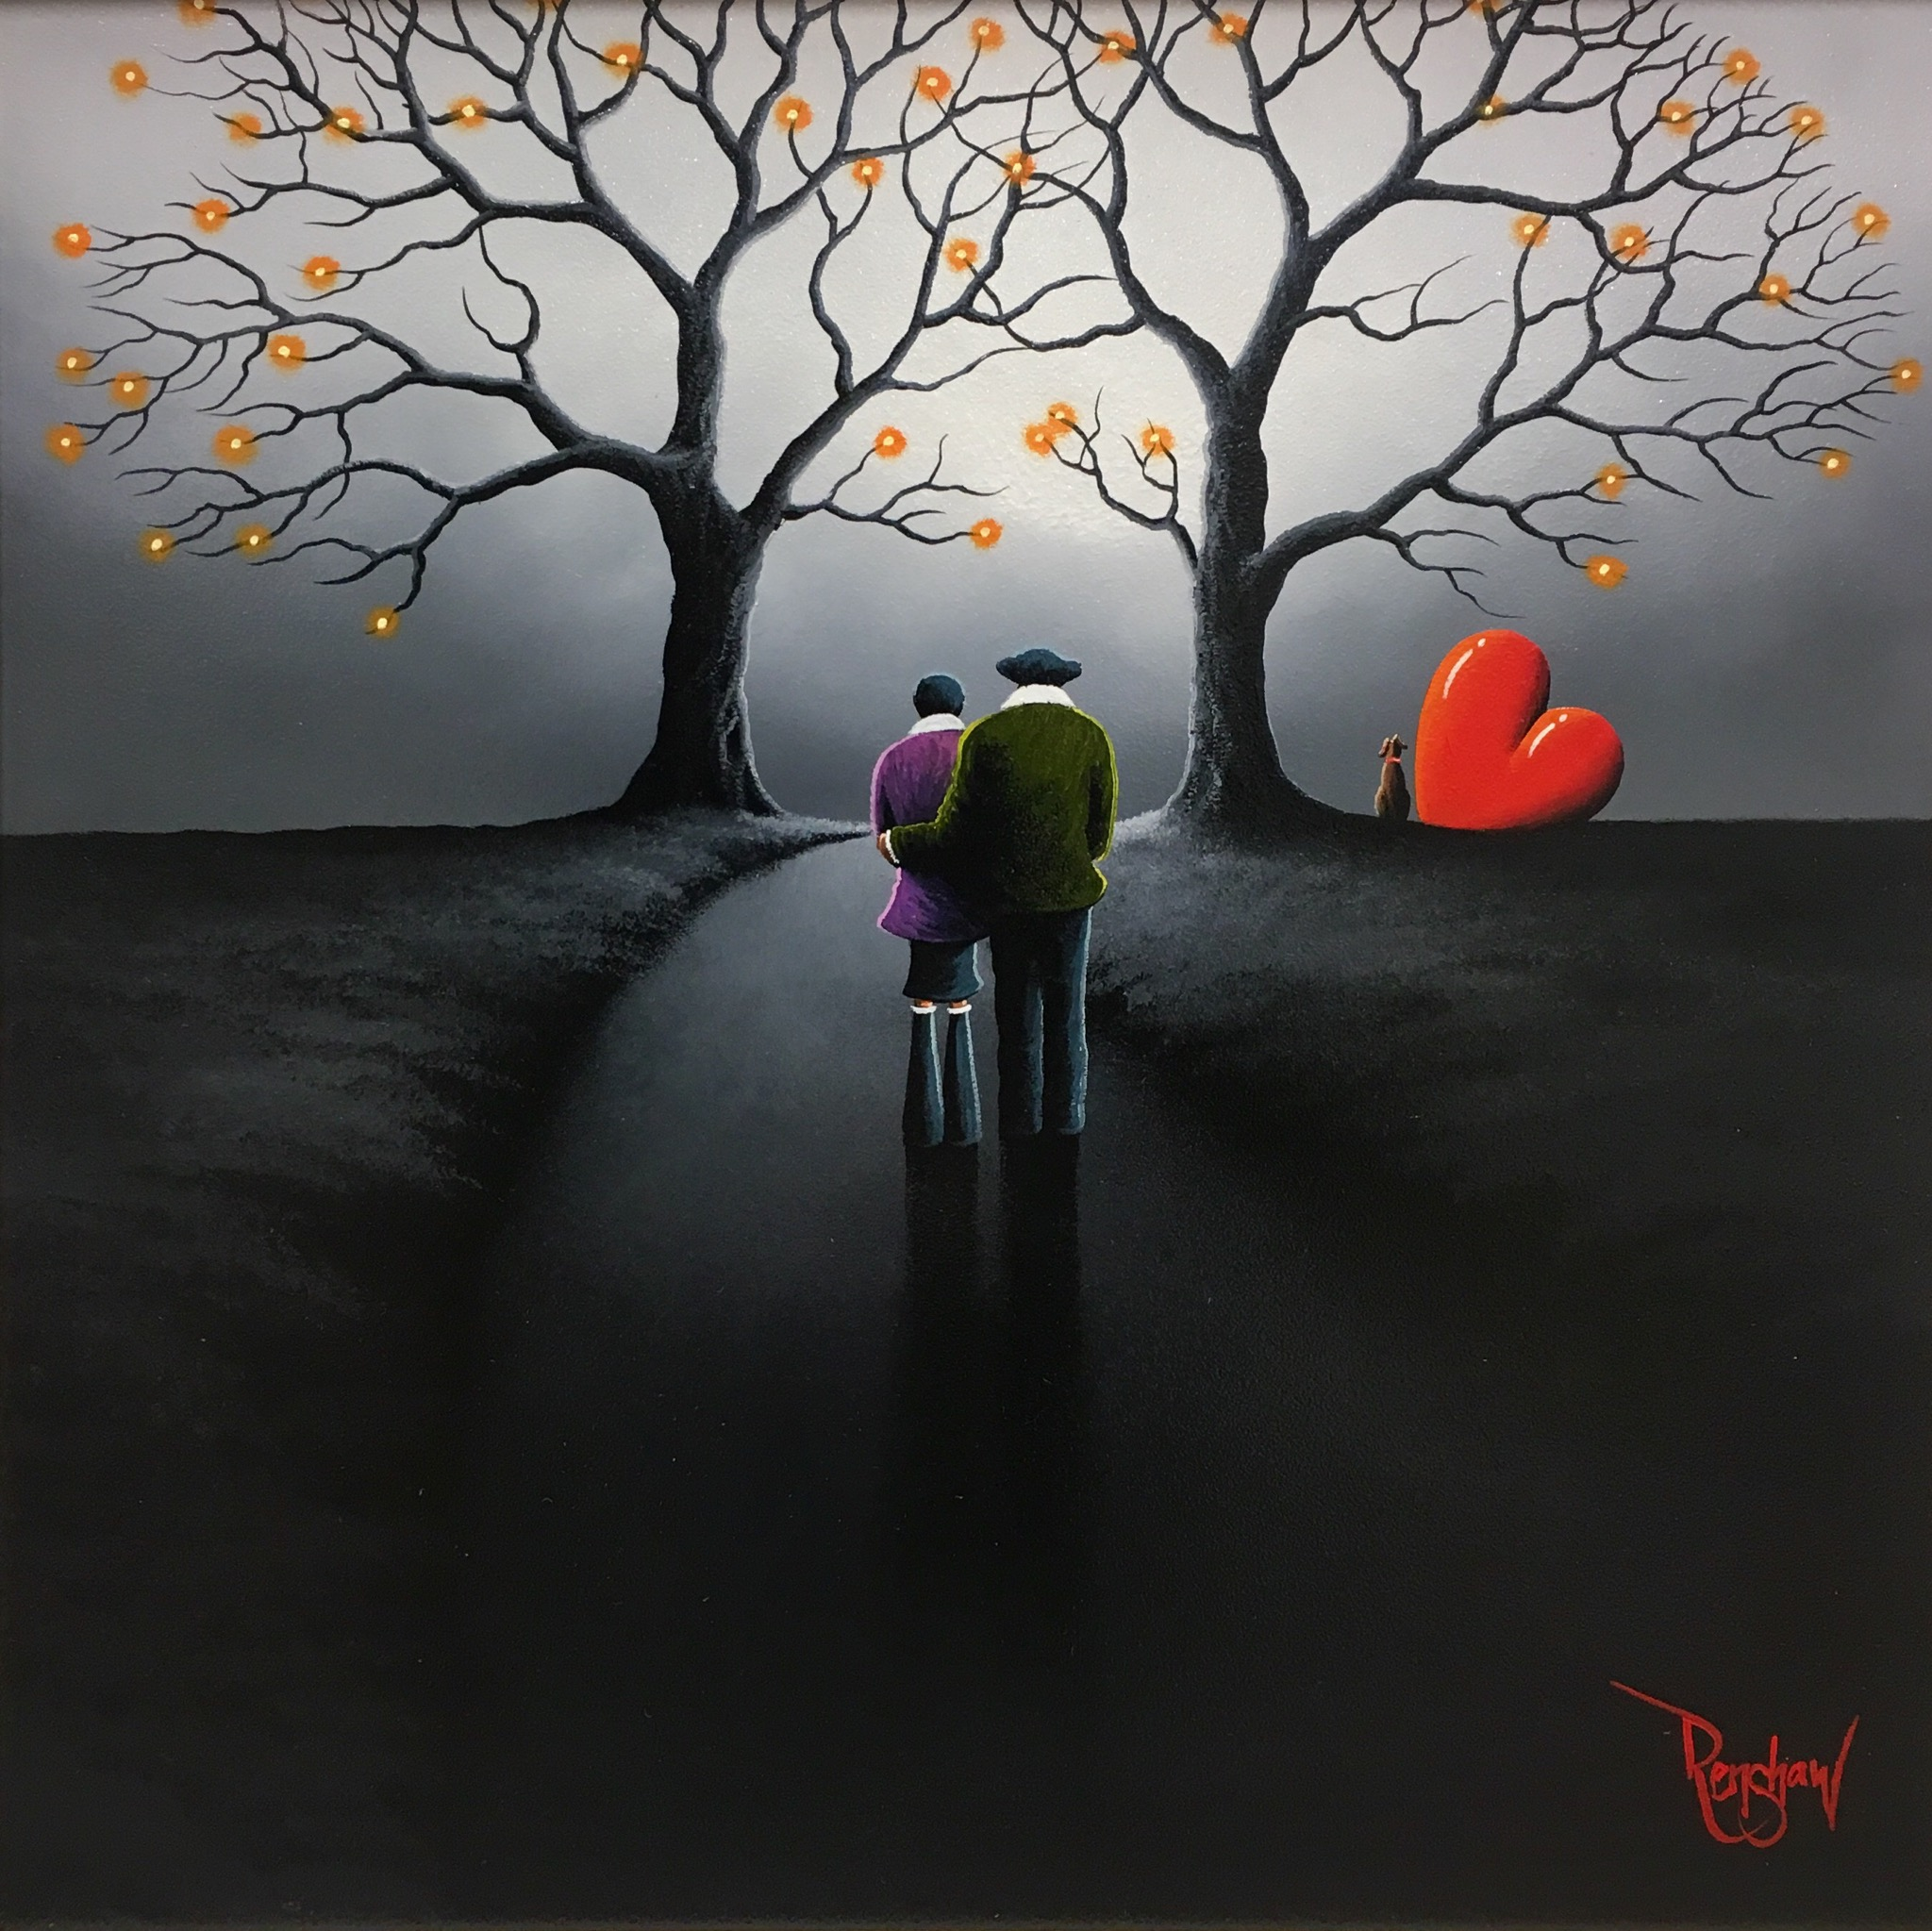 An original oil painting by David Renshaw, a continuation in his Northern Romance series. Standing central in a grey country night scene, Doris and Ted are looking at two trees either side of the path. Both are bare of all their leaves with small orange orbs of lights at the end of most of the branches. In the distance to the right of the trees sits the couple's dog and the symbolic red love heart on its side.